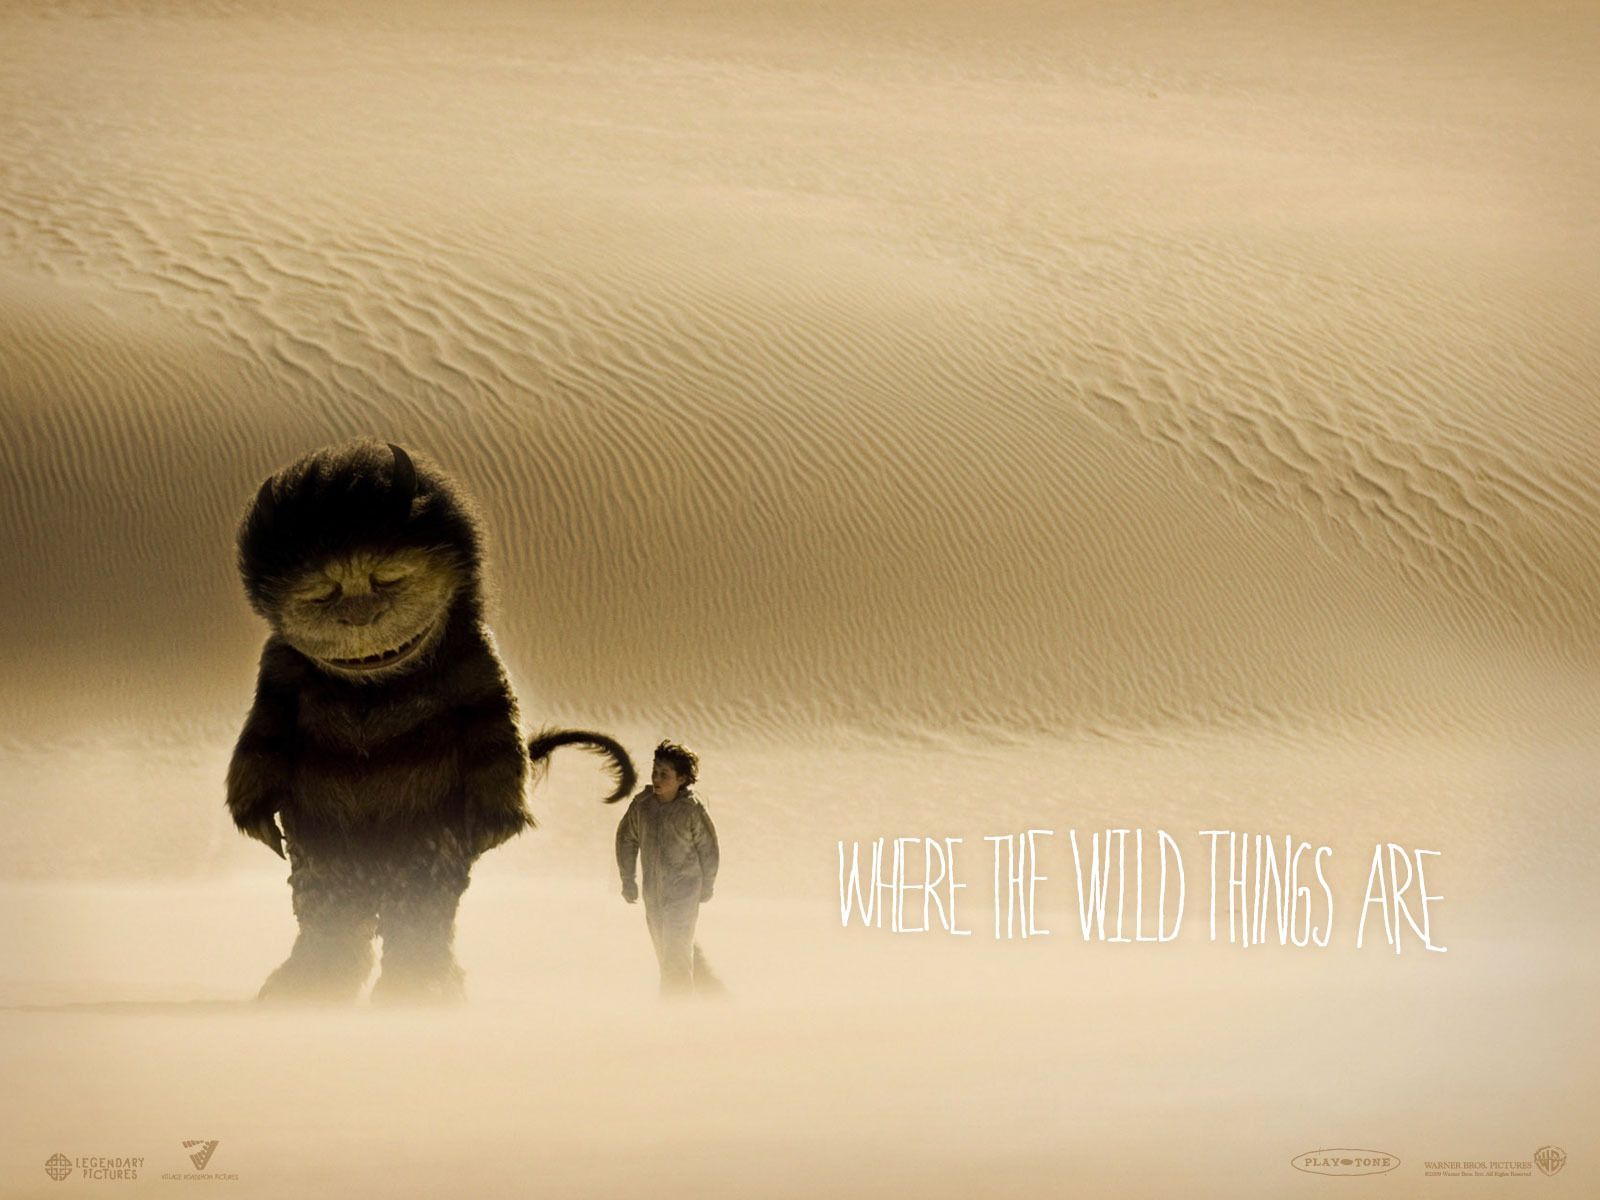 Where the Wild Things Are Wallpapers Daily inspiration